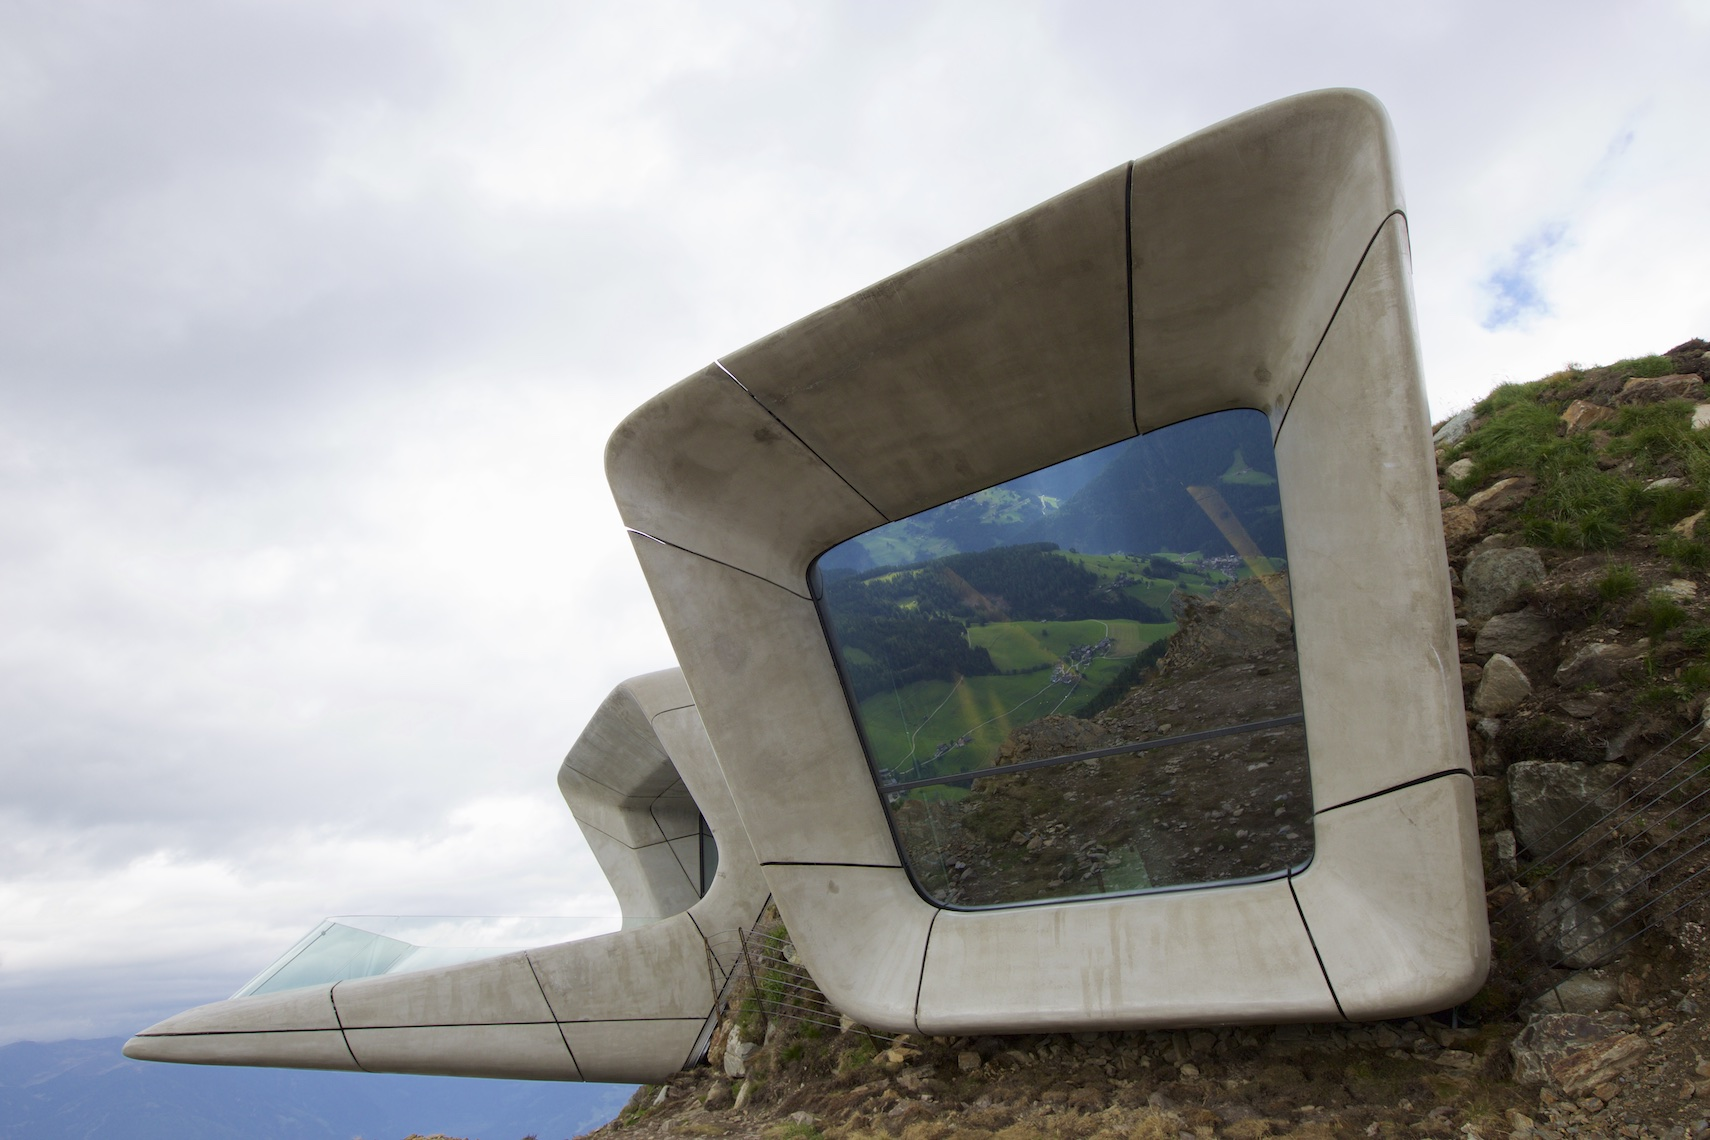 Messner Mountain Museum, Kronplatz